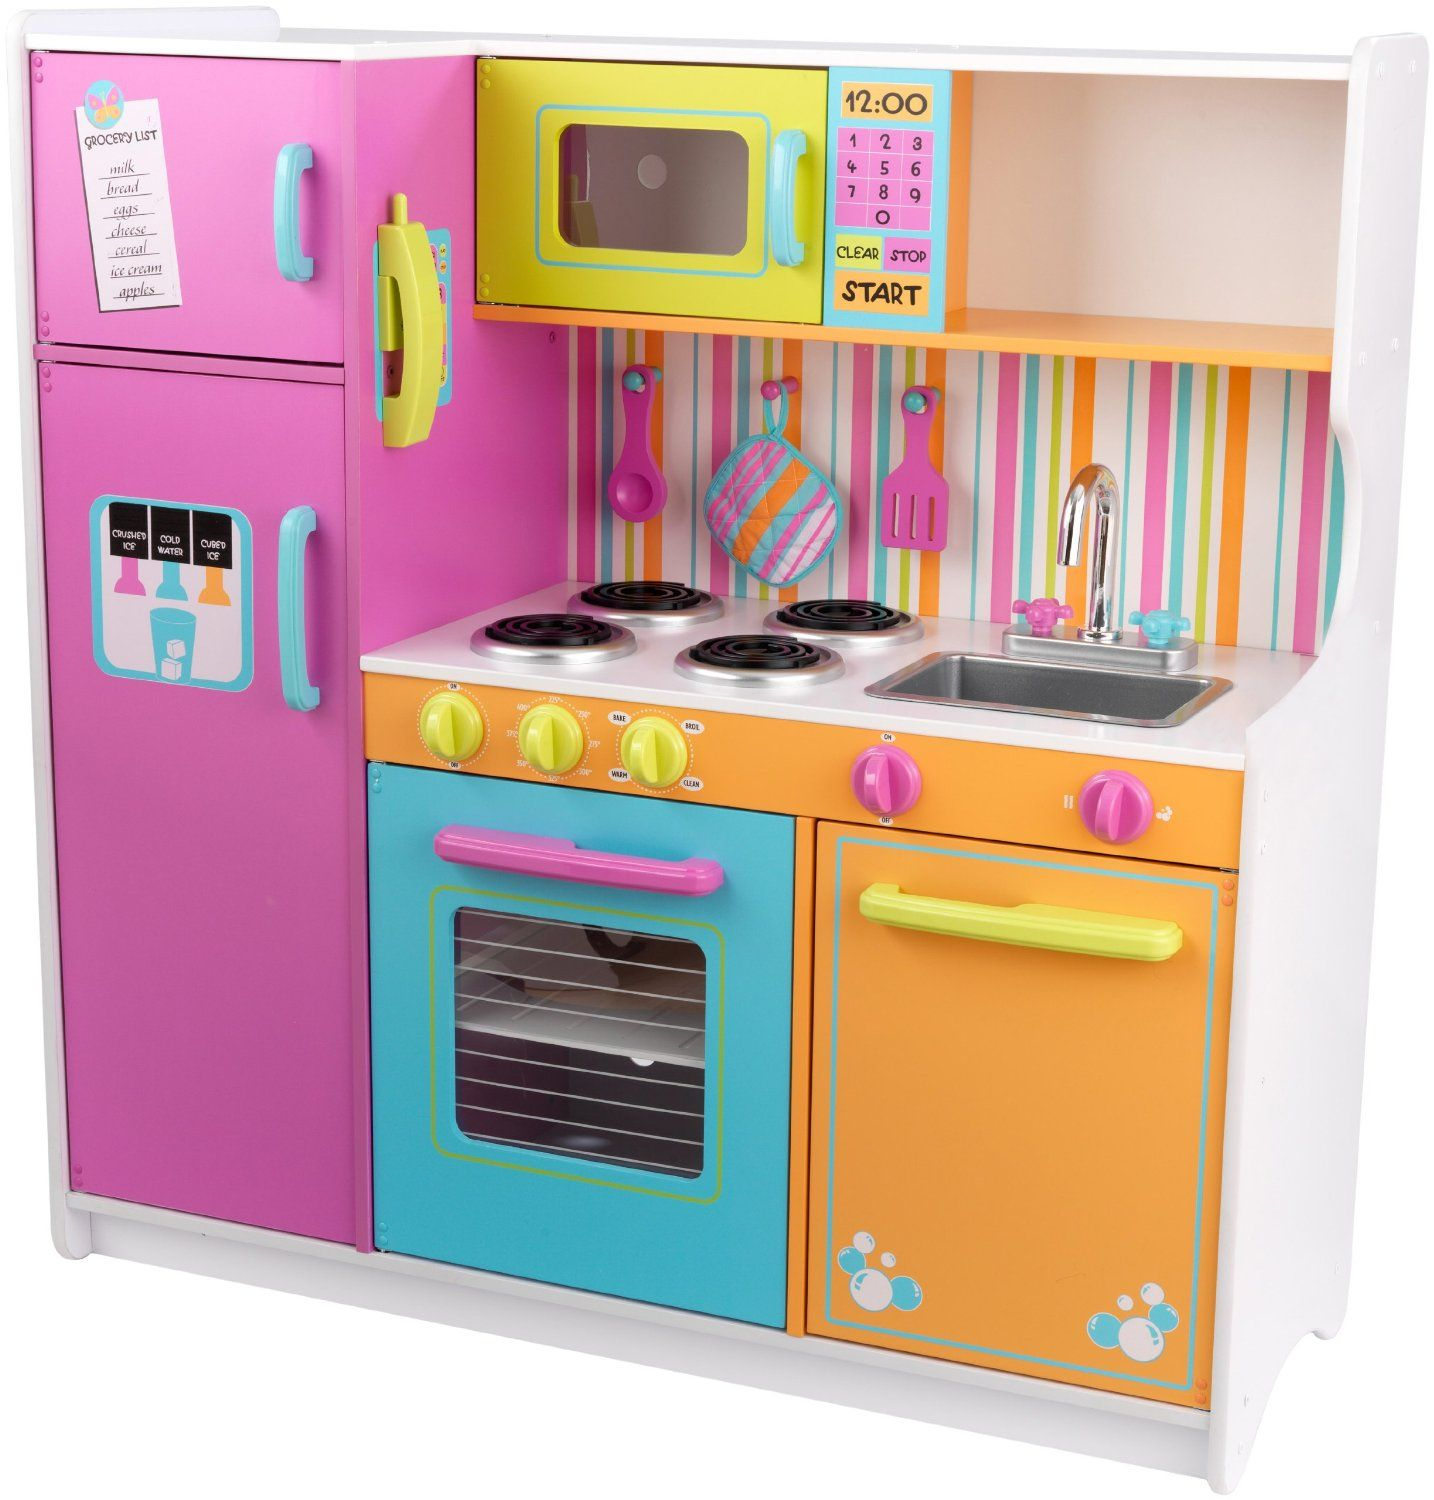 kitchens for kids amazoncom kidkraft deluxe big  bright kitchen  - amazoncom kidkraft deluxe big bright kitchen toys games